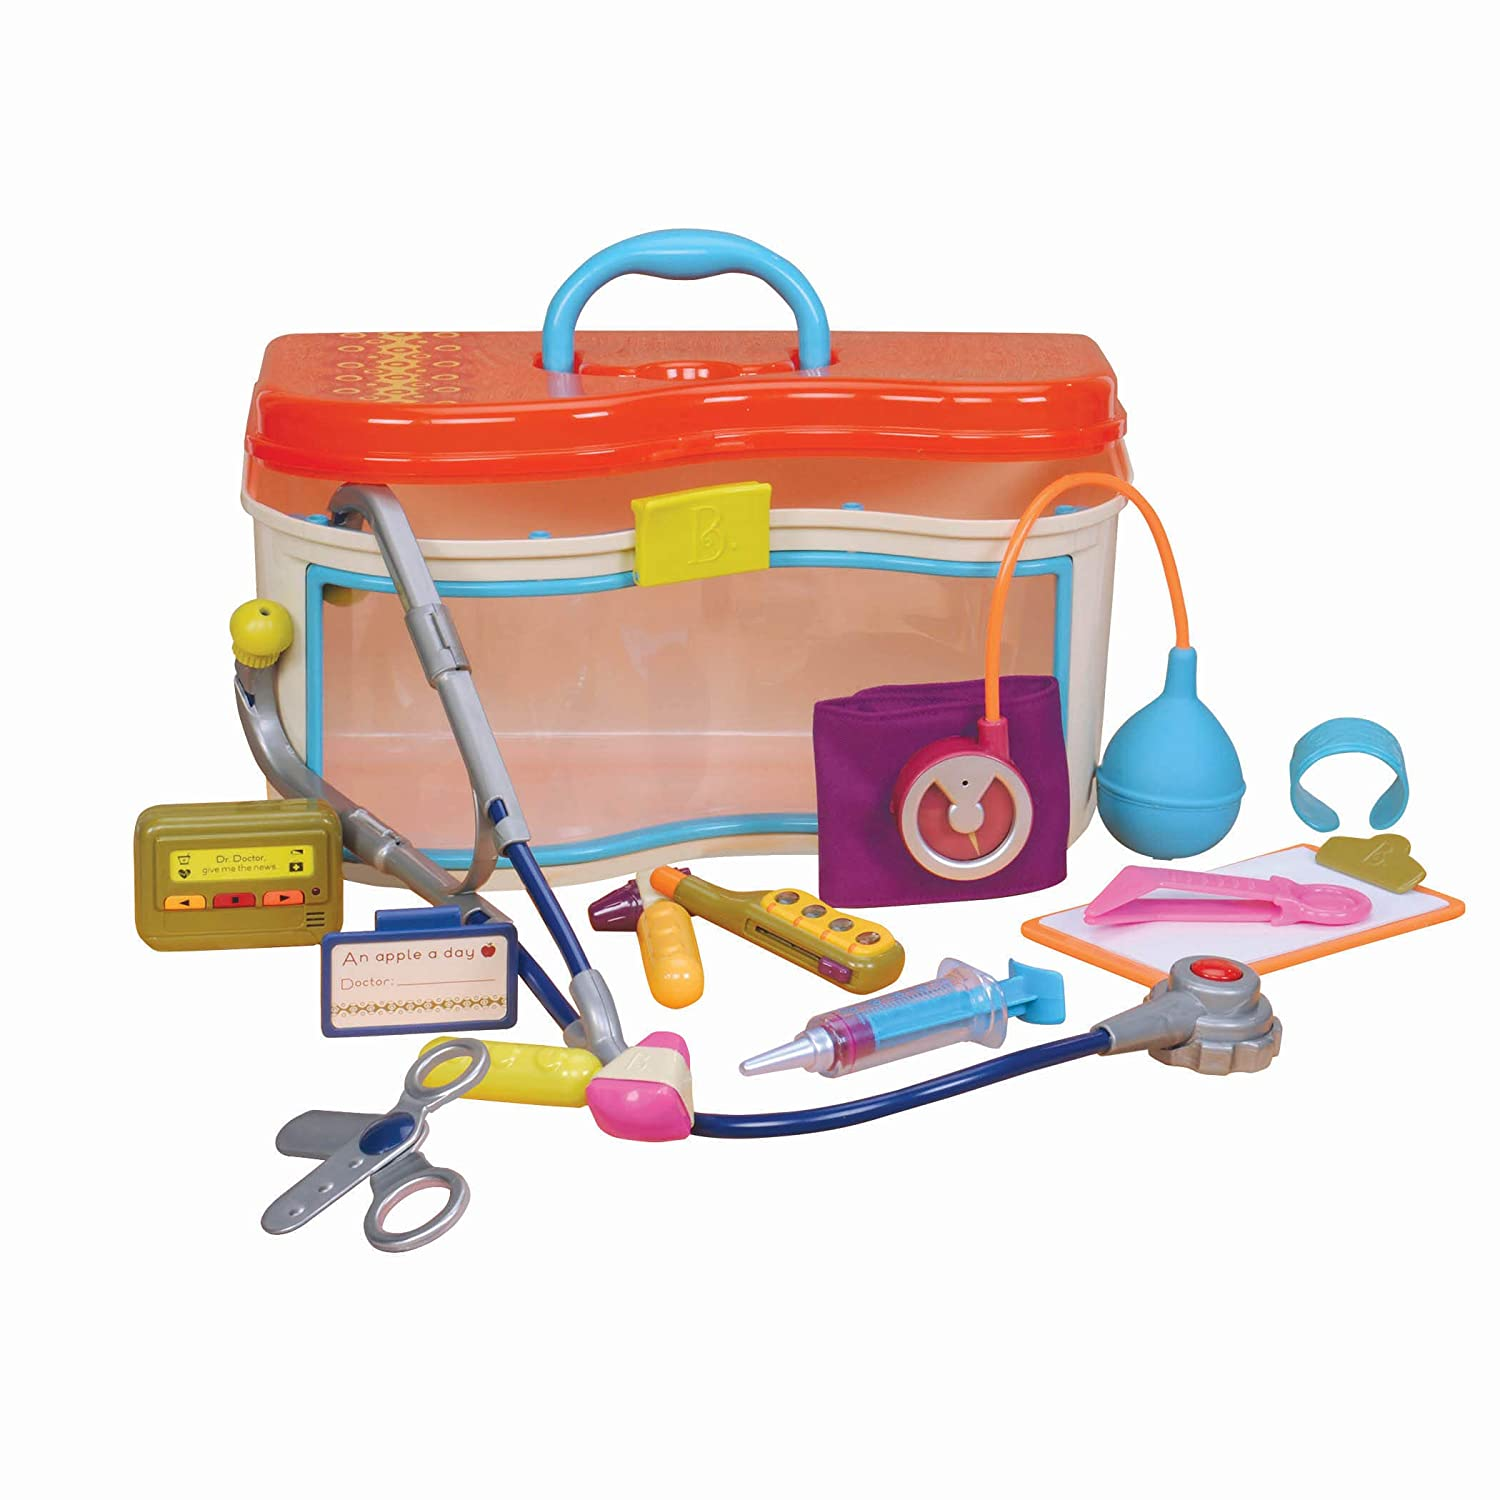 Top 9 Best Toy Doctor Kits Reviews in 2020 3